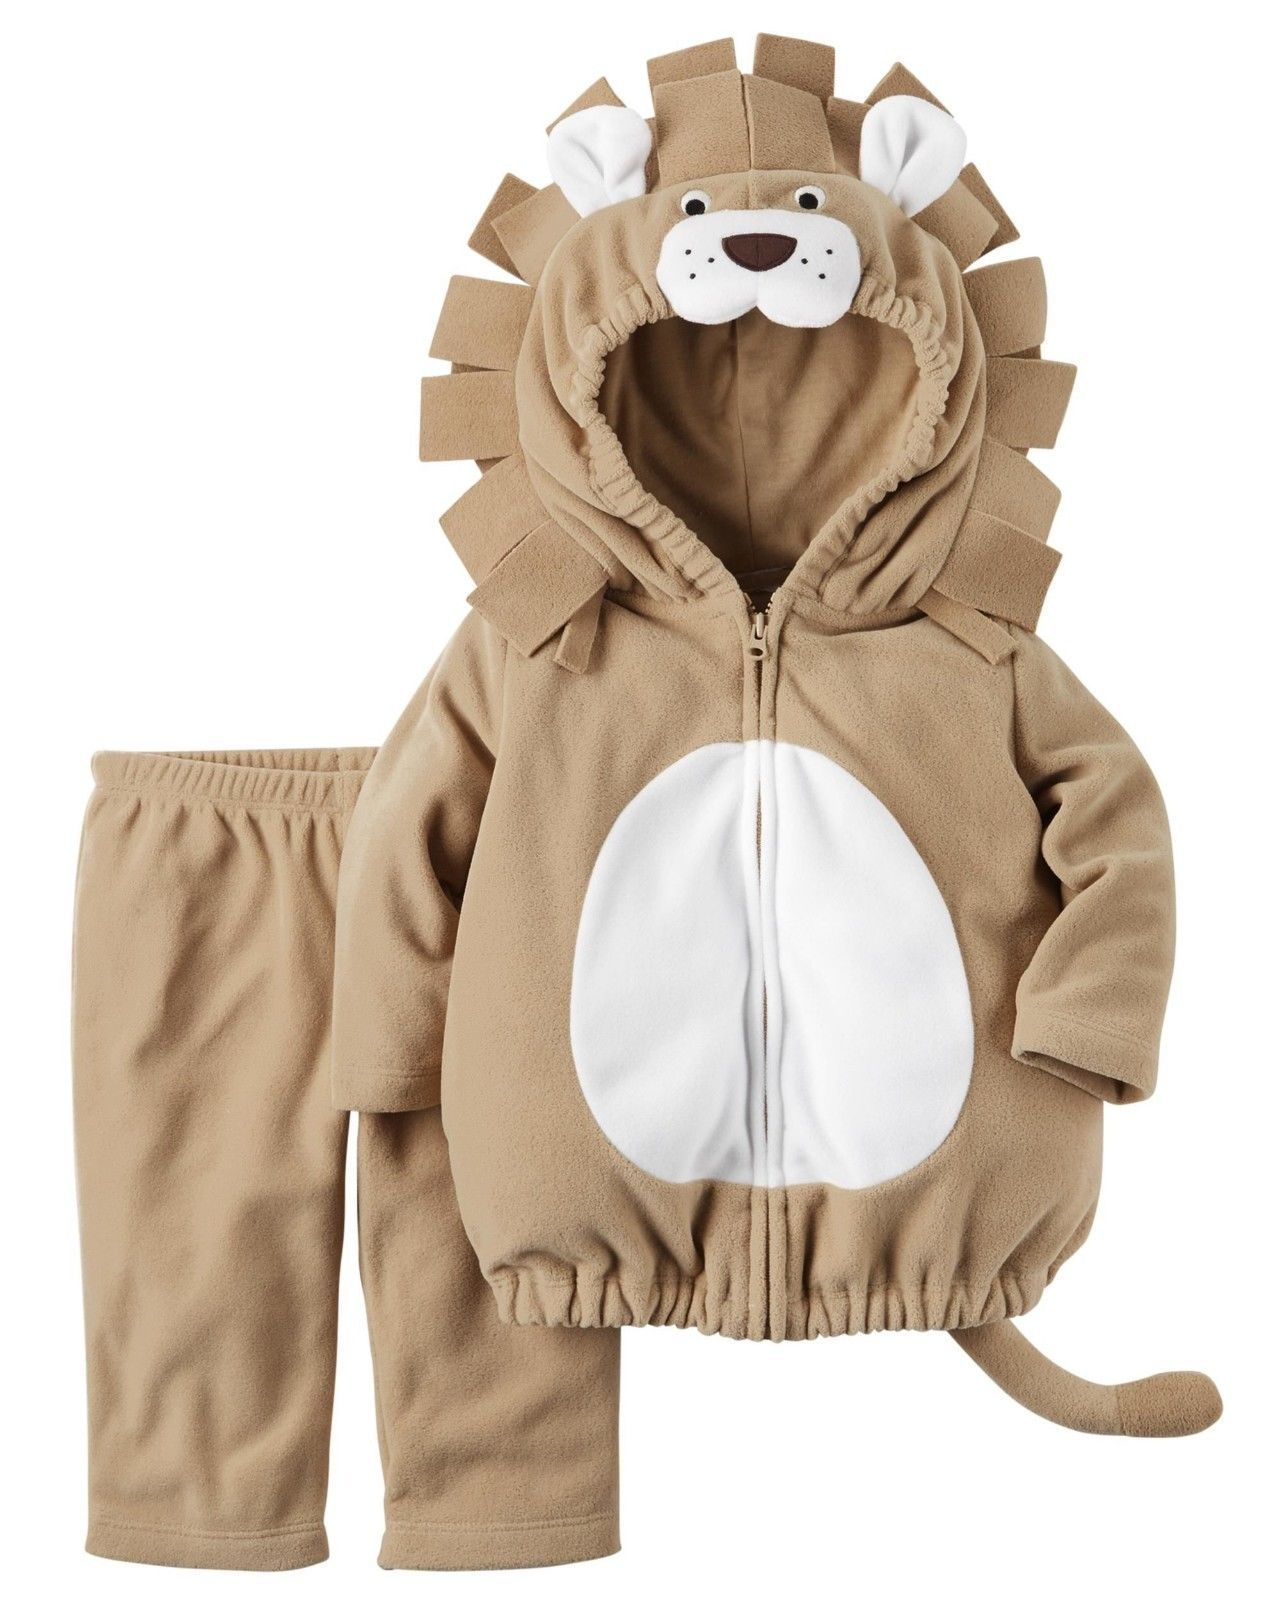 NEW NWT Carters Boys or Girls Lion Halloween Costume Size 24 Months